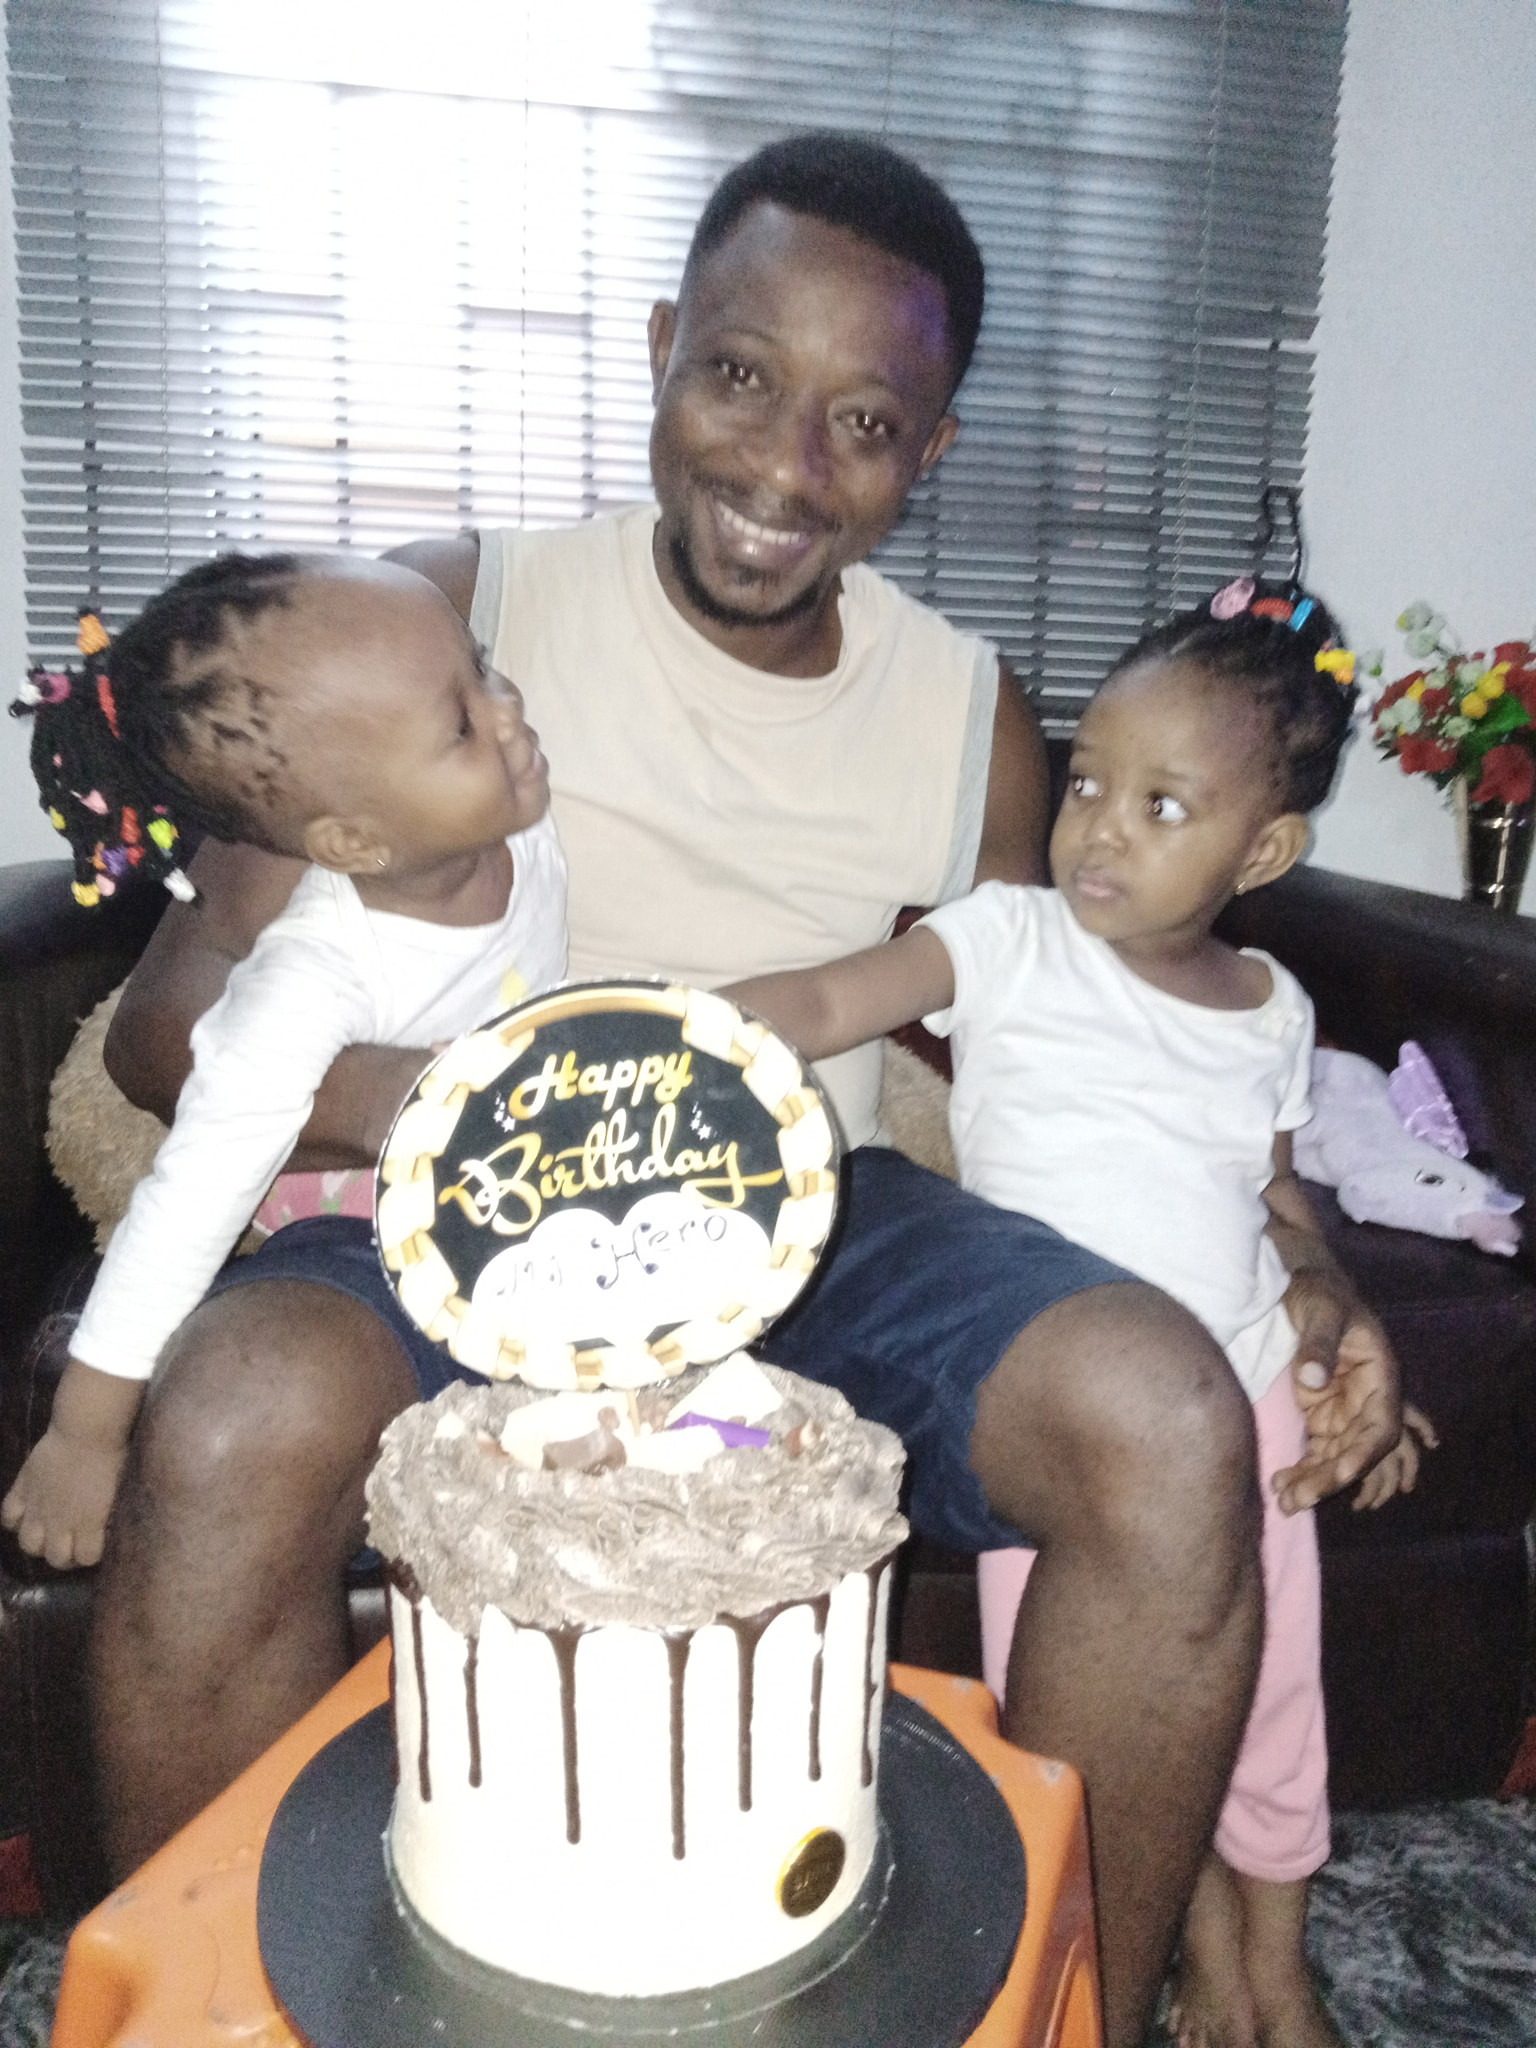 """""""I have never cut a birthday cake since I was born"""" - Nigerian man says as wife surprises him with his first birthday cake"""